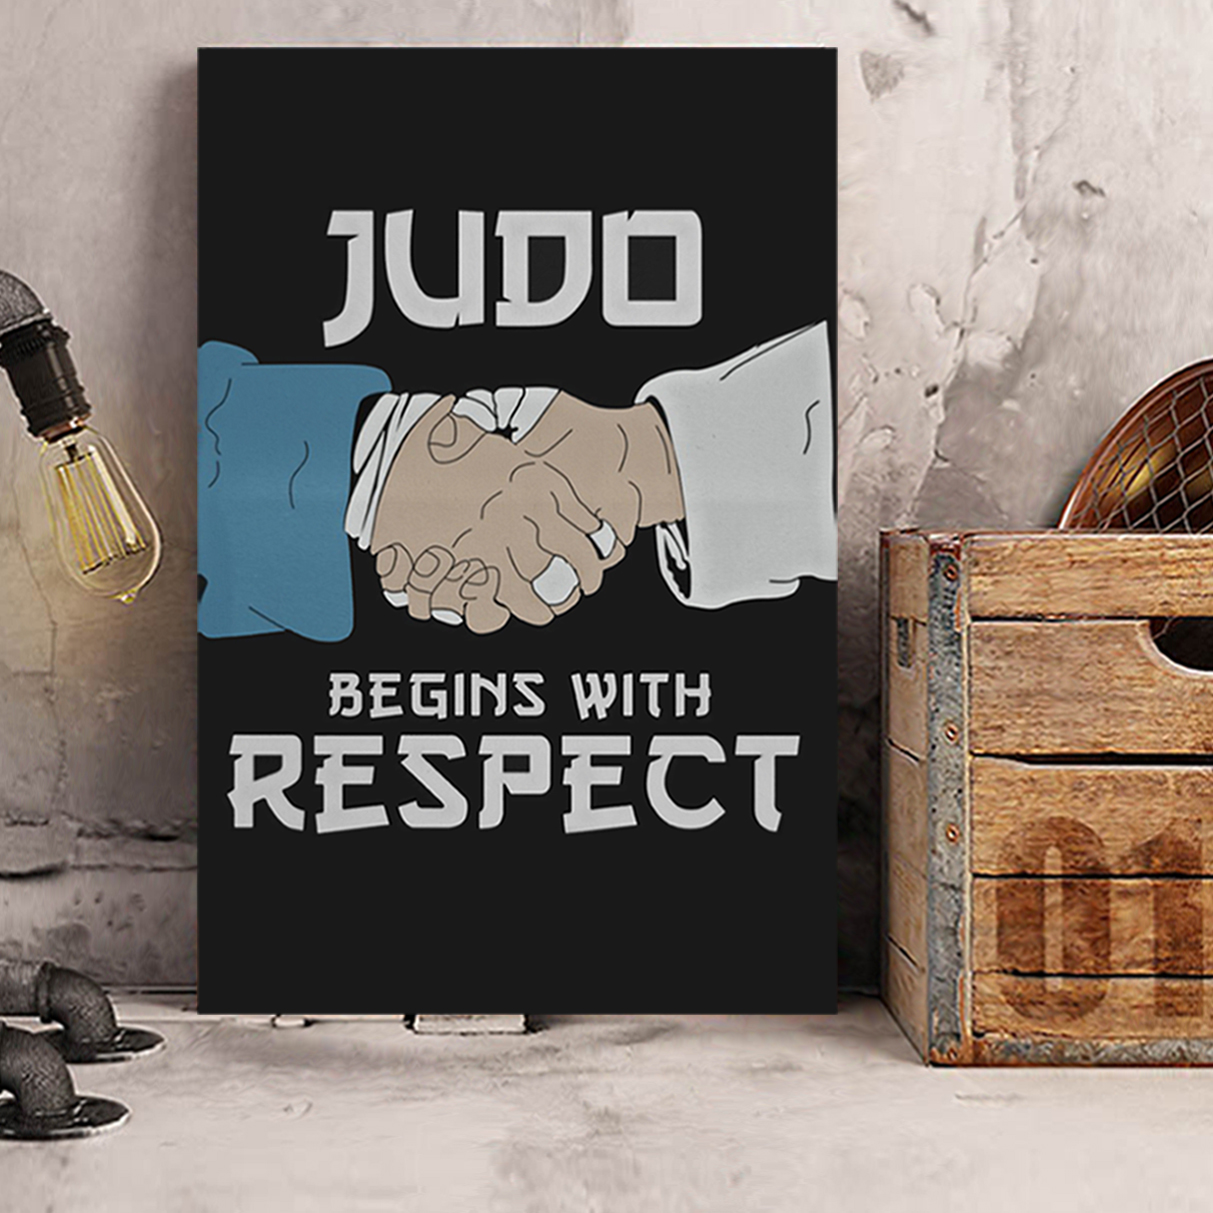 Judo begins with respect canvas prints small